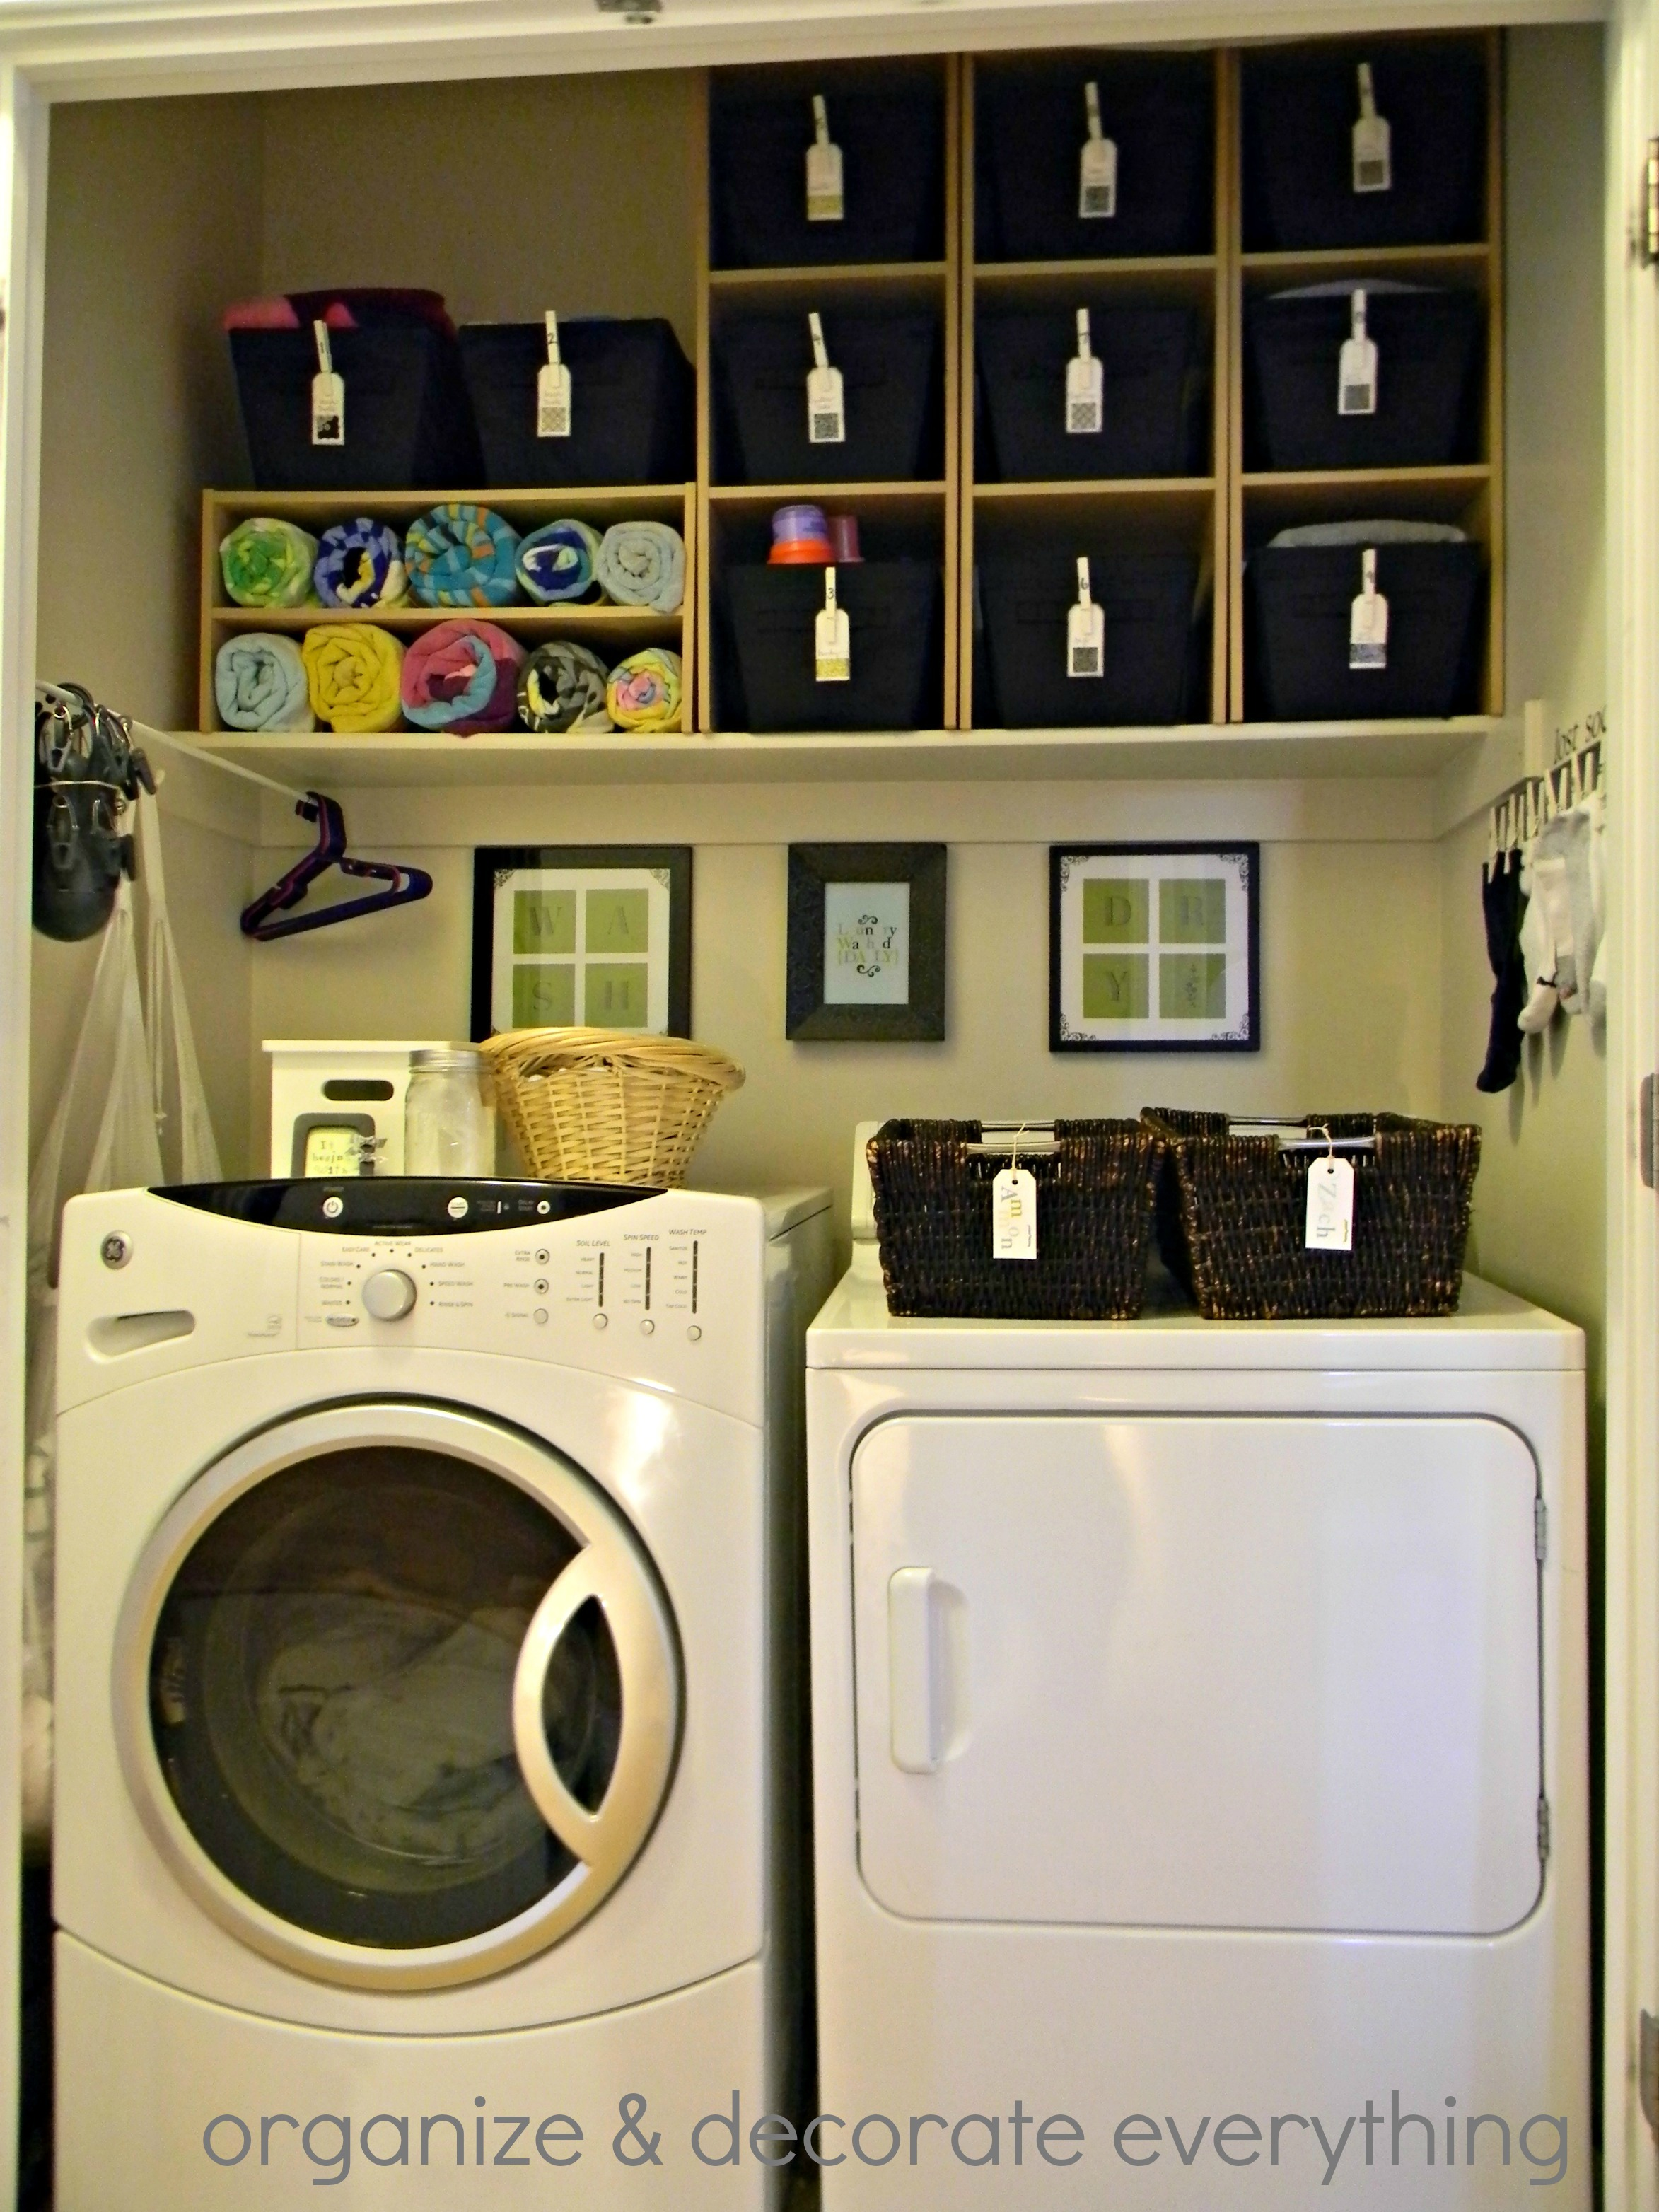 Organized space of the week - Laundry closet | A Bowl Full of Lemons